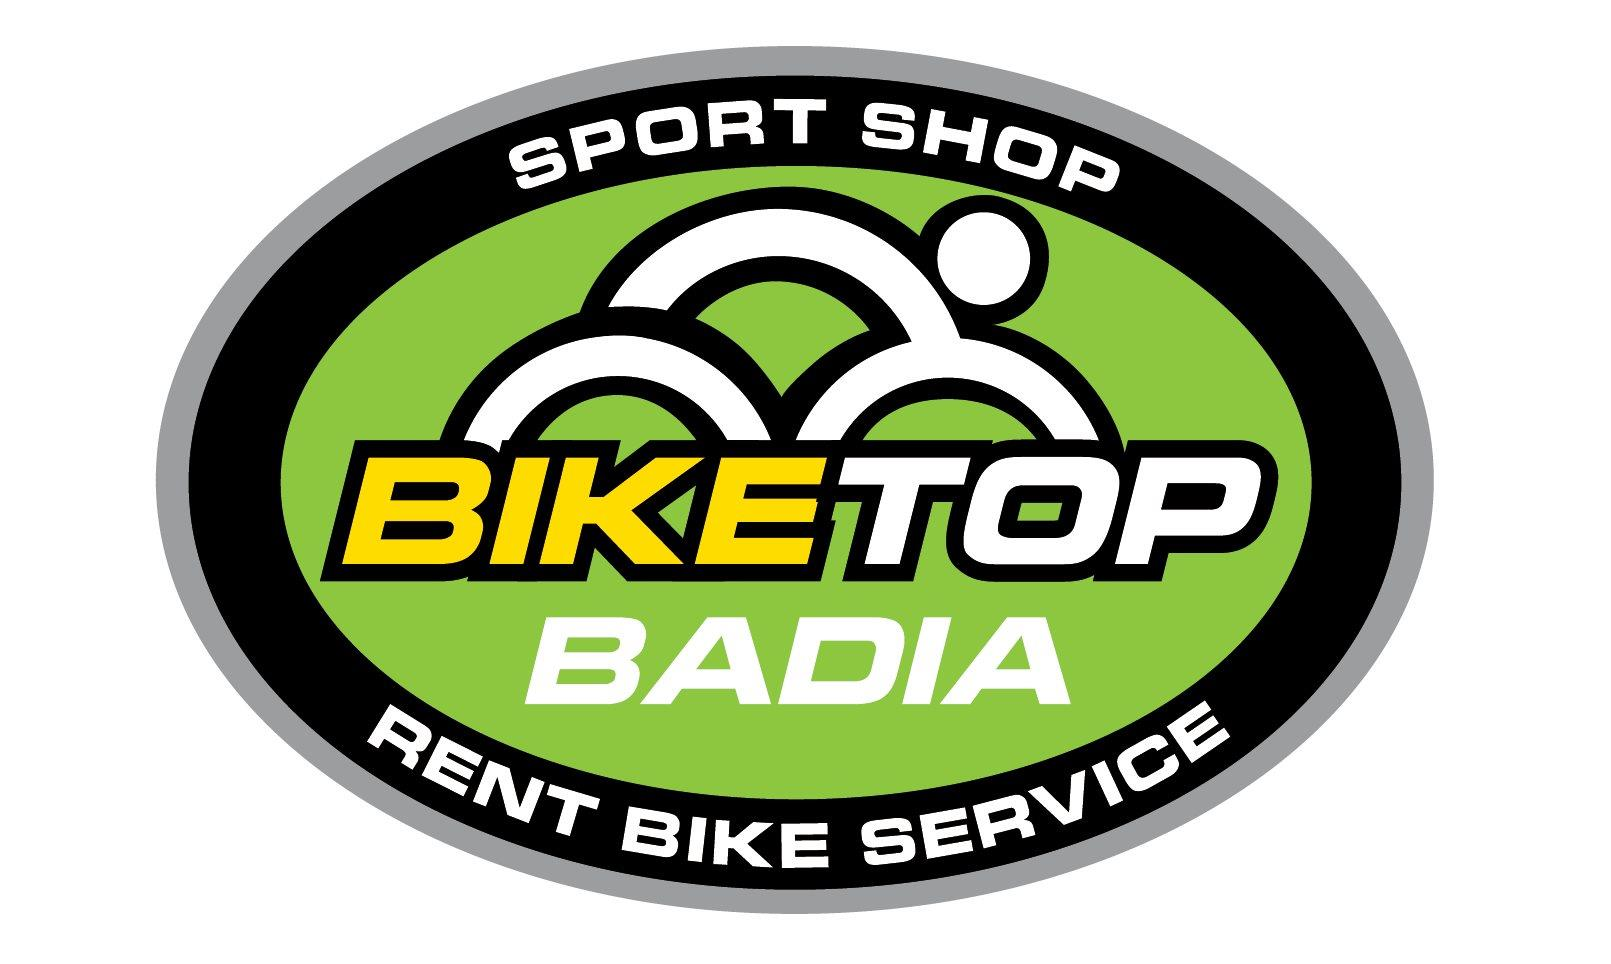 Bike Top Badia